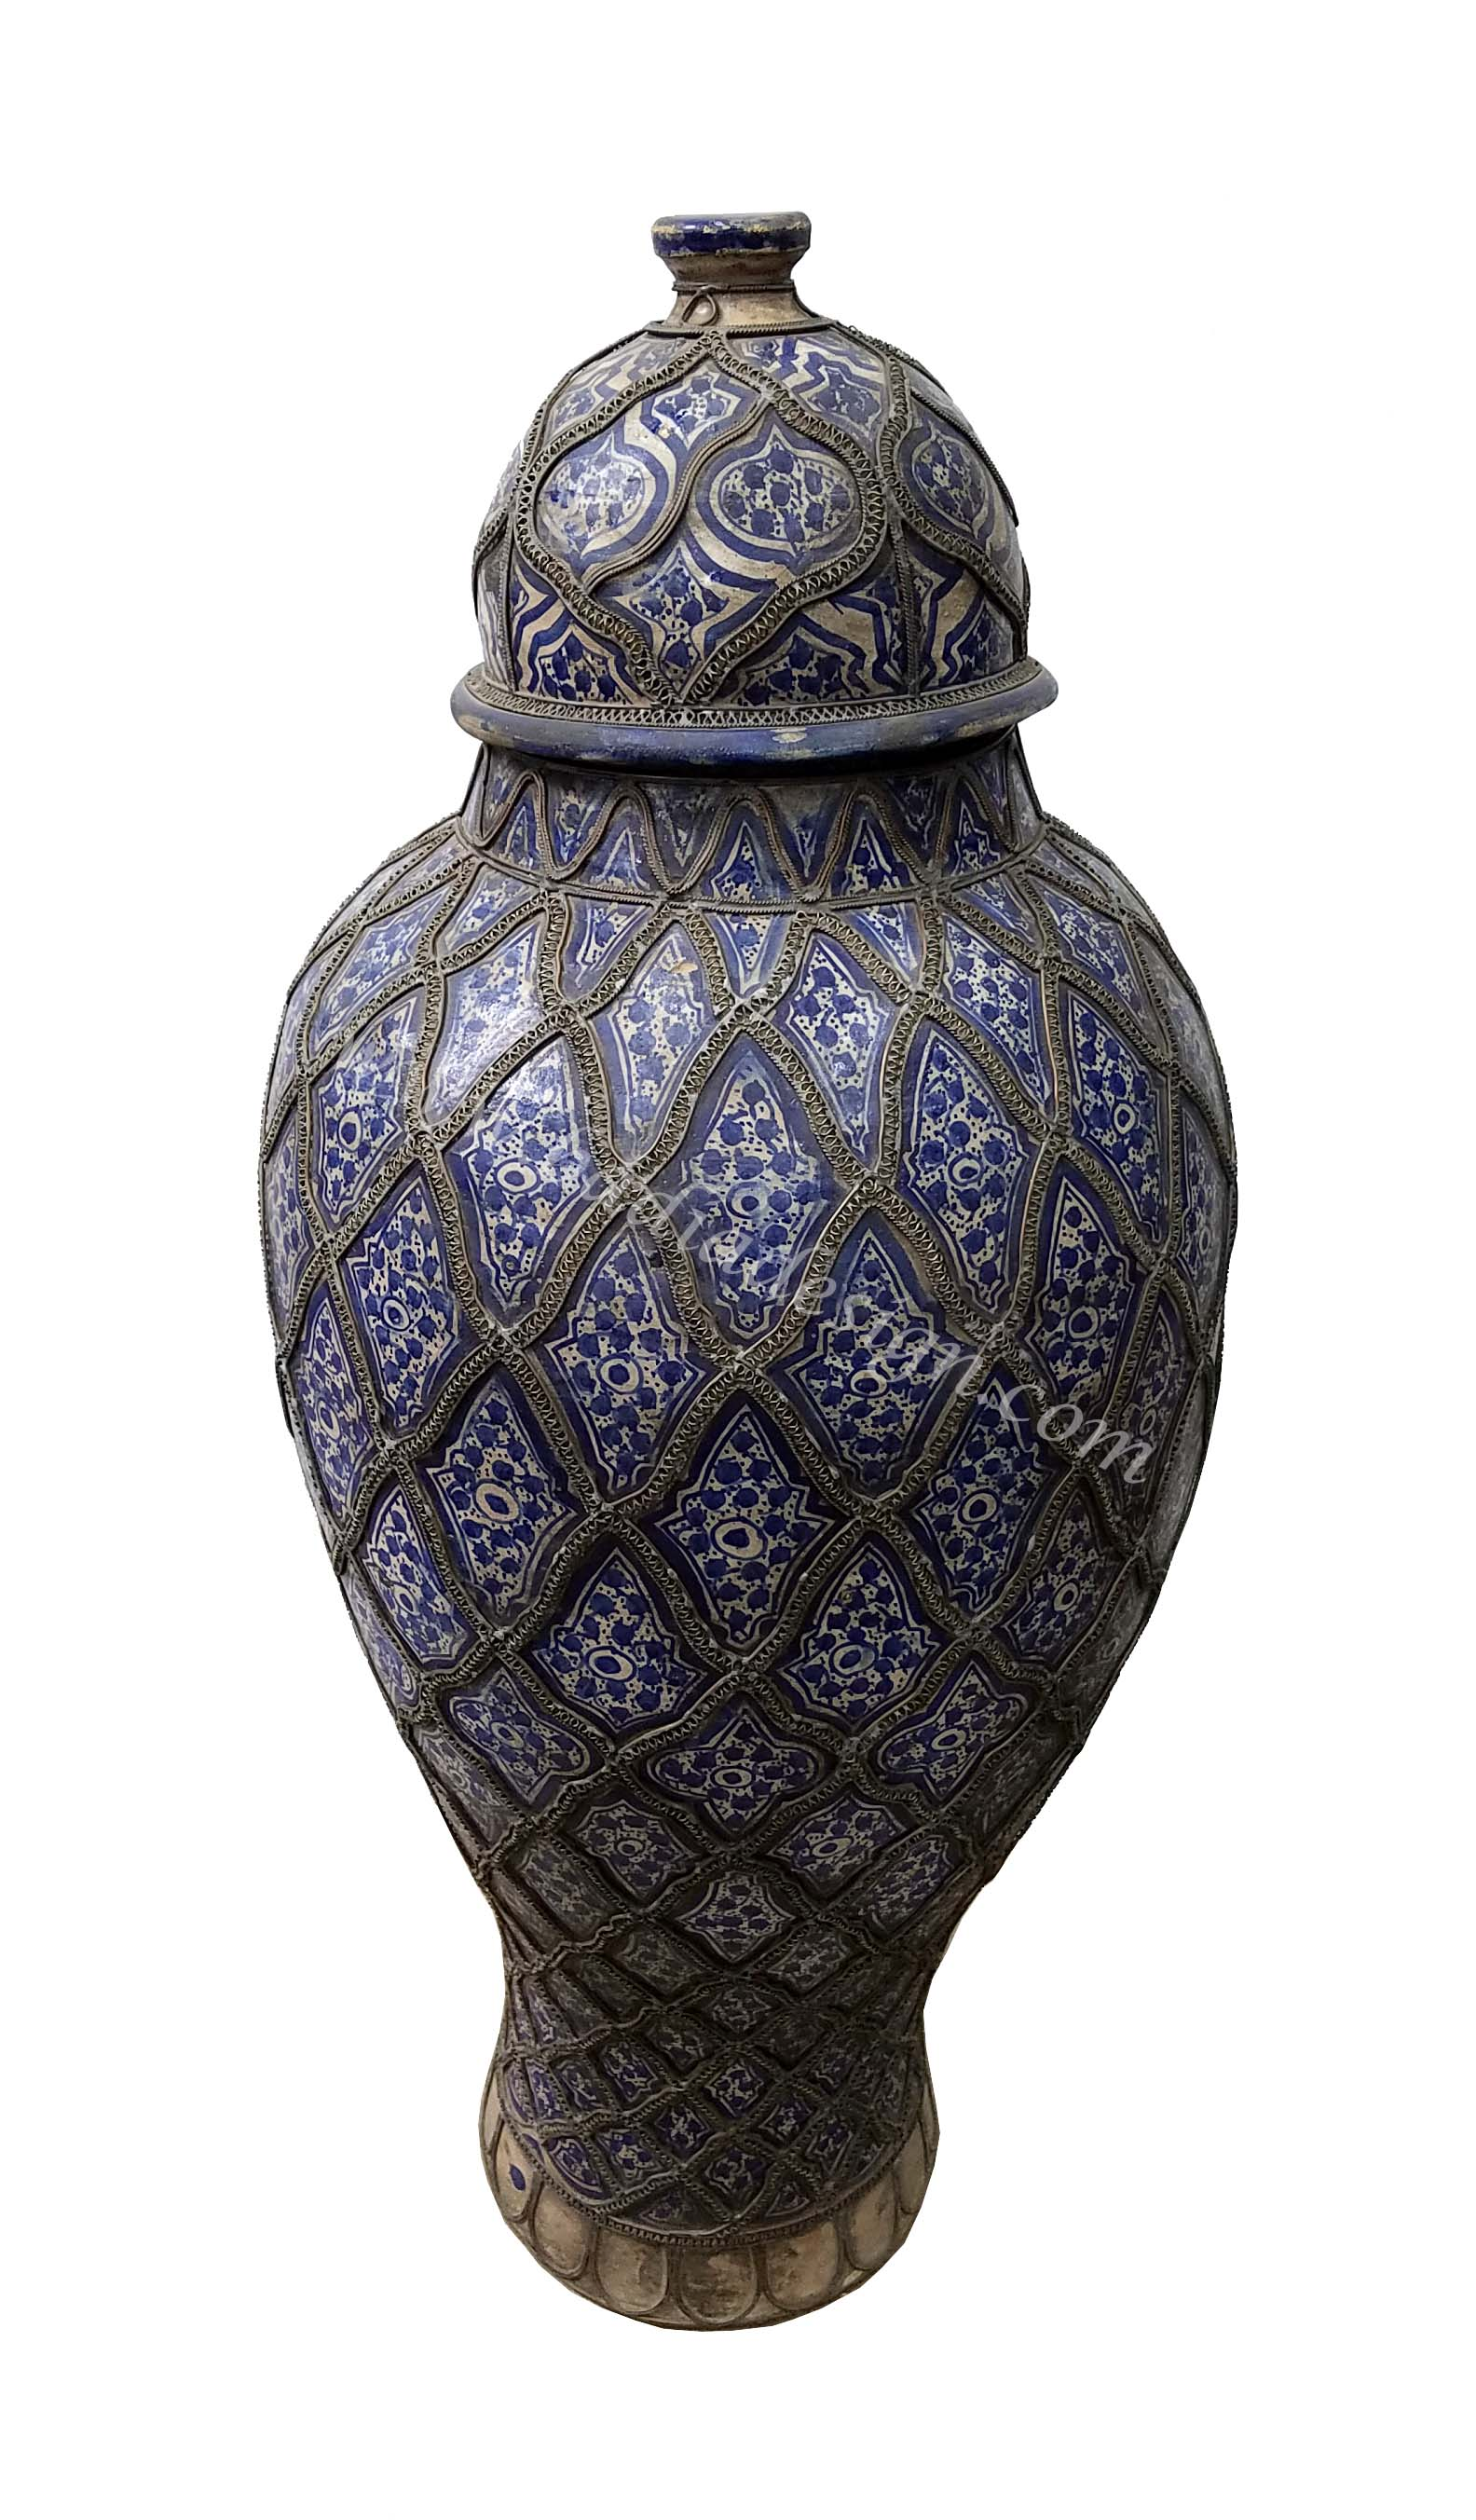 moroccan-blue-and-white-ceramic-urn-va062.jpg